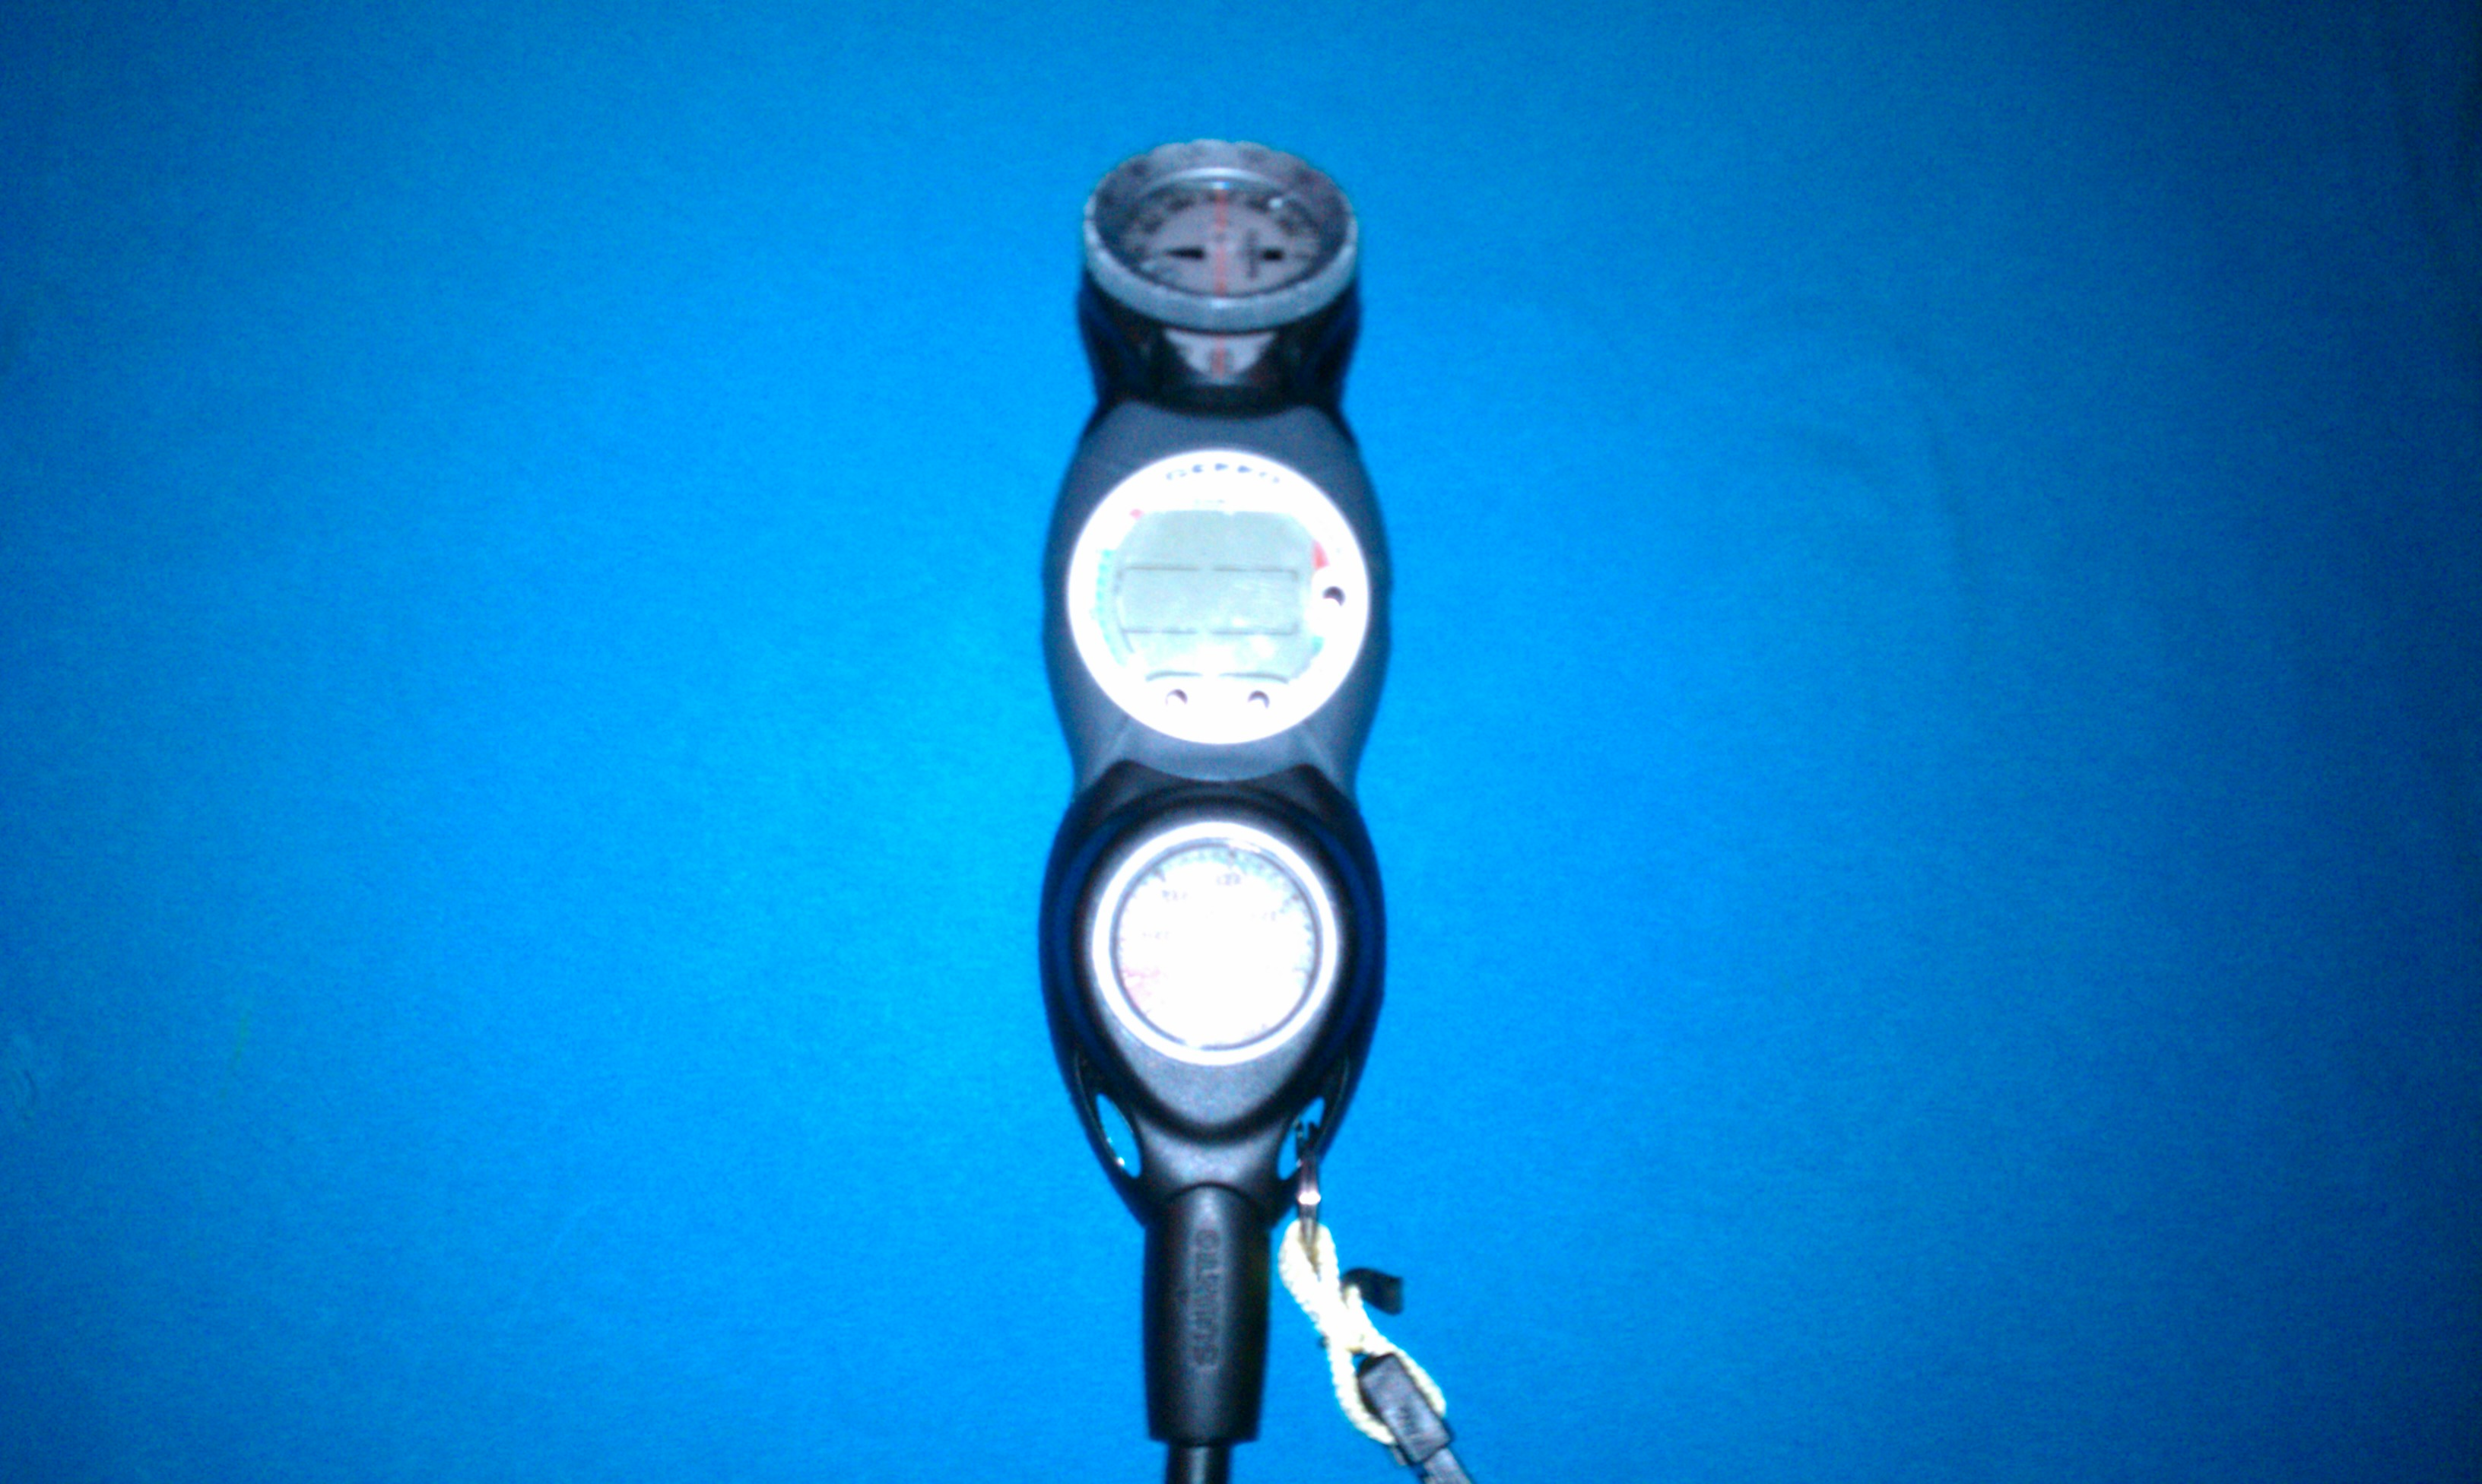 File:Dive computer,compass, and Pressure gauge jpg - Wikimedia Commons